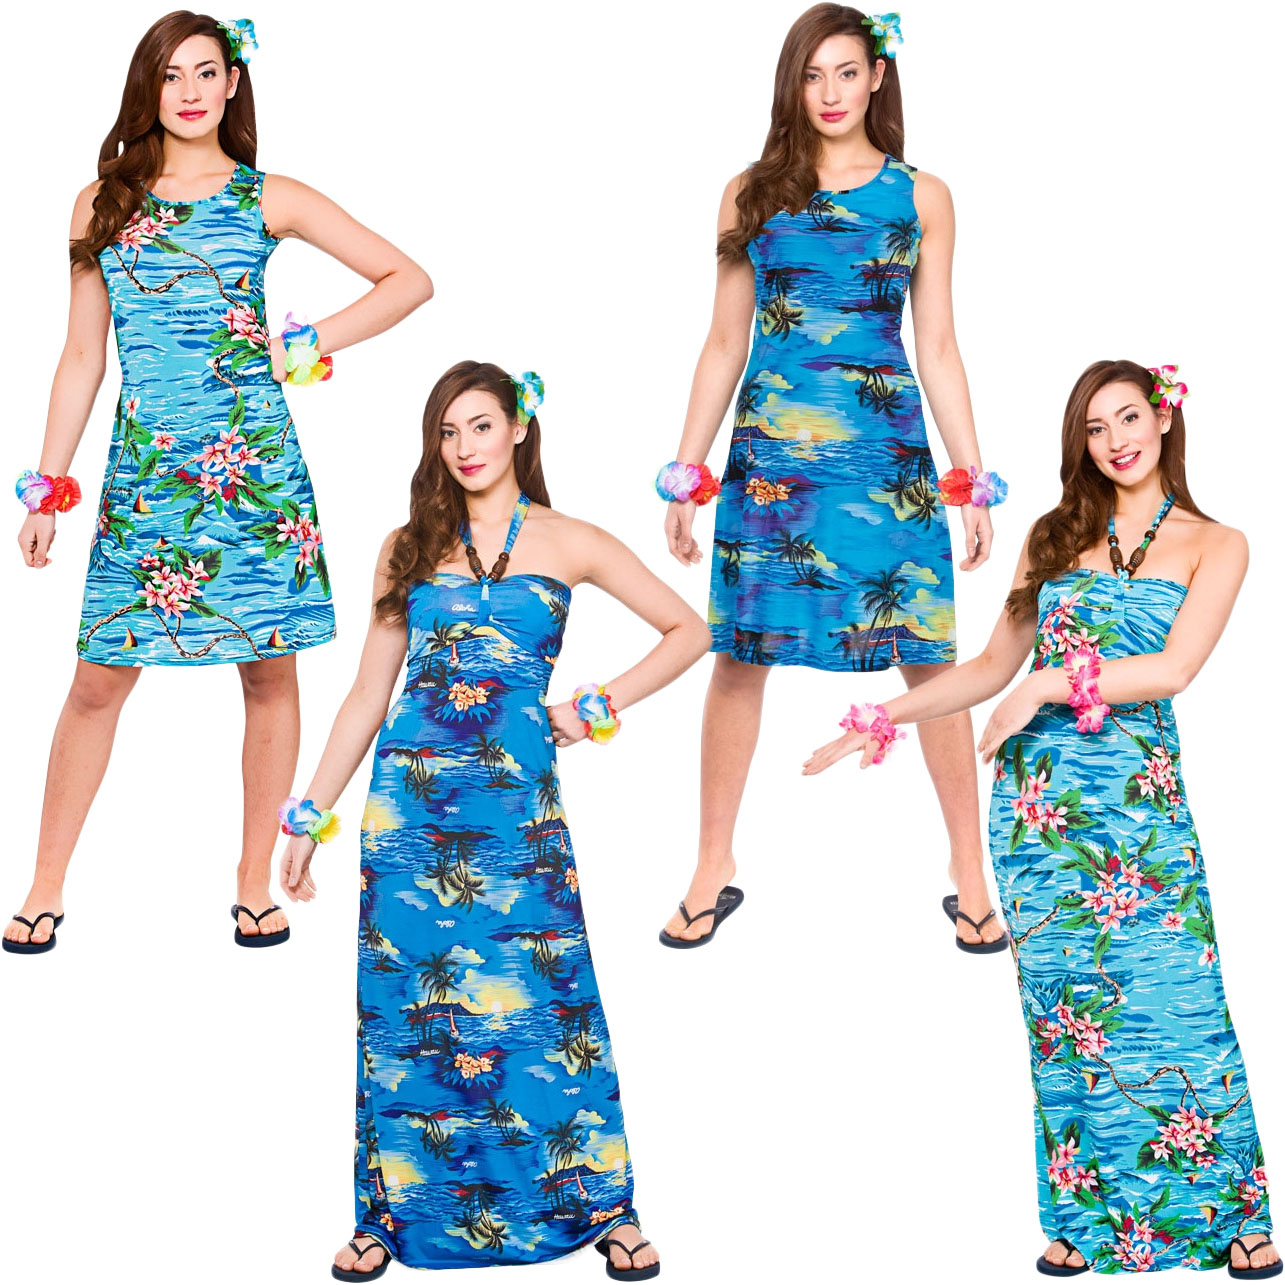 Beautiful fusion of old and new, our Alohaz Hawaiian clothing are sewn with pride. Want a short sexy island dress? Or a long floral style? We have short, long, .